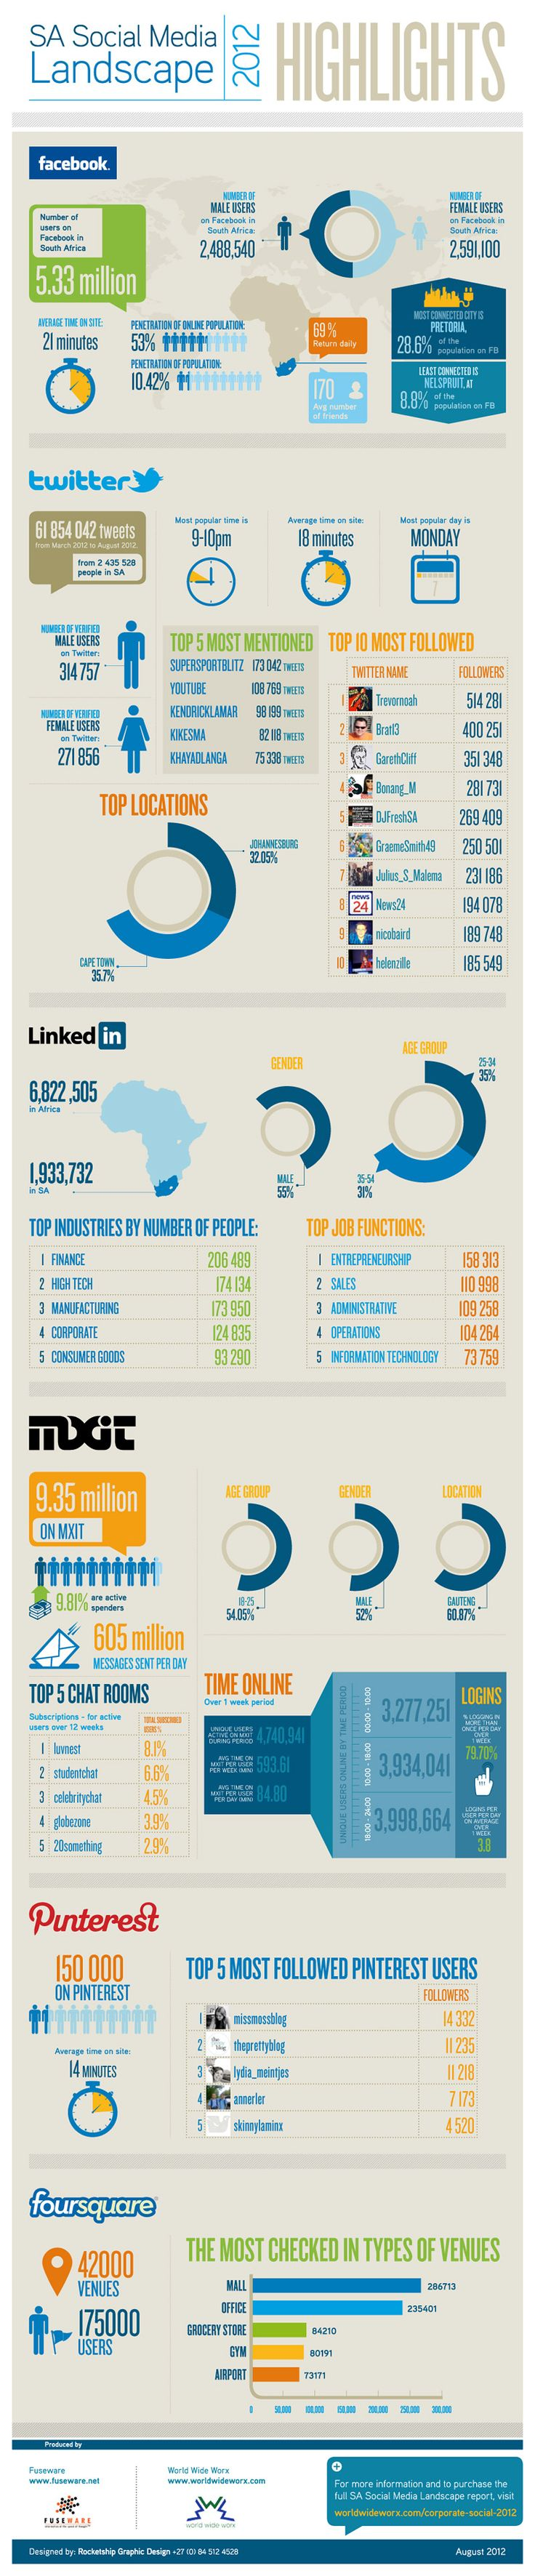 Headline findings of the SA Social Media Landscape 2012 research study conducted by World Wide Worx (http://www.worldwideworx.com) and Fuseware (http://www.fuseware.net)